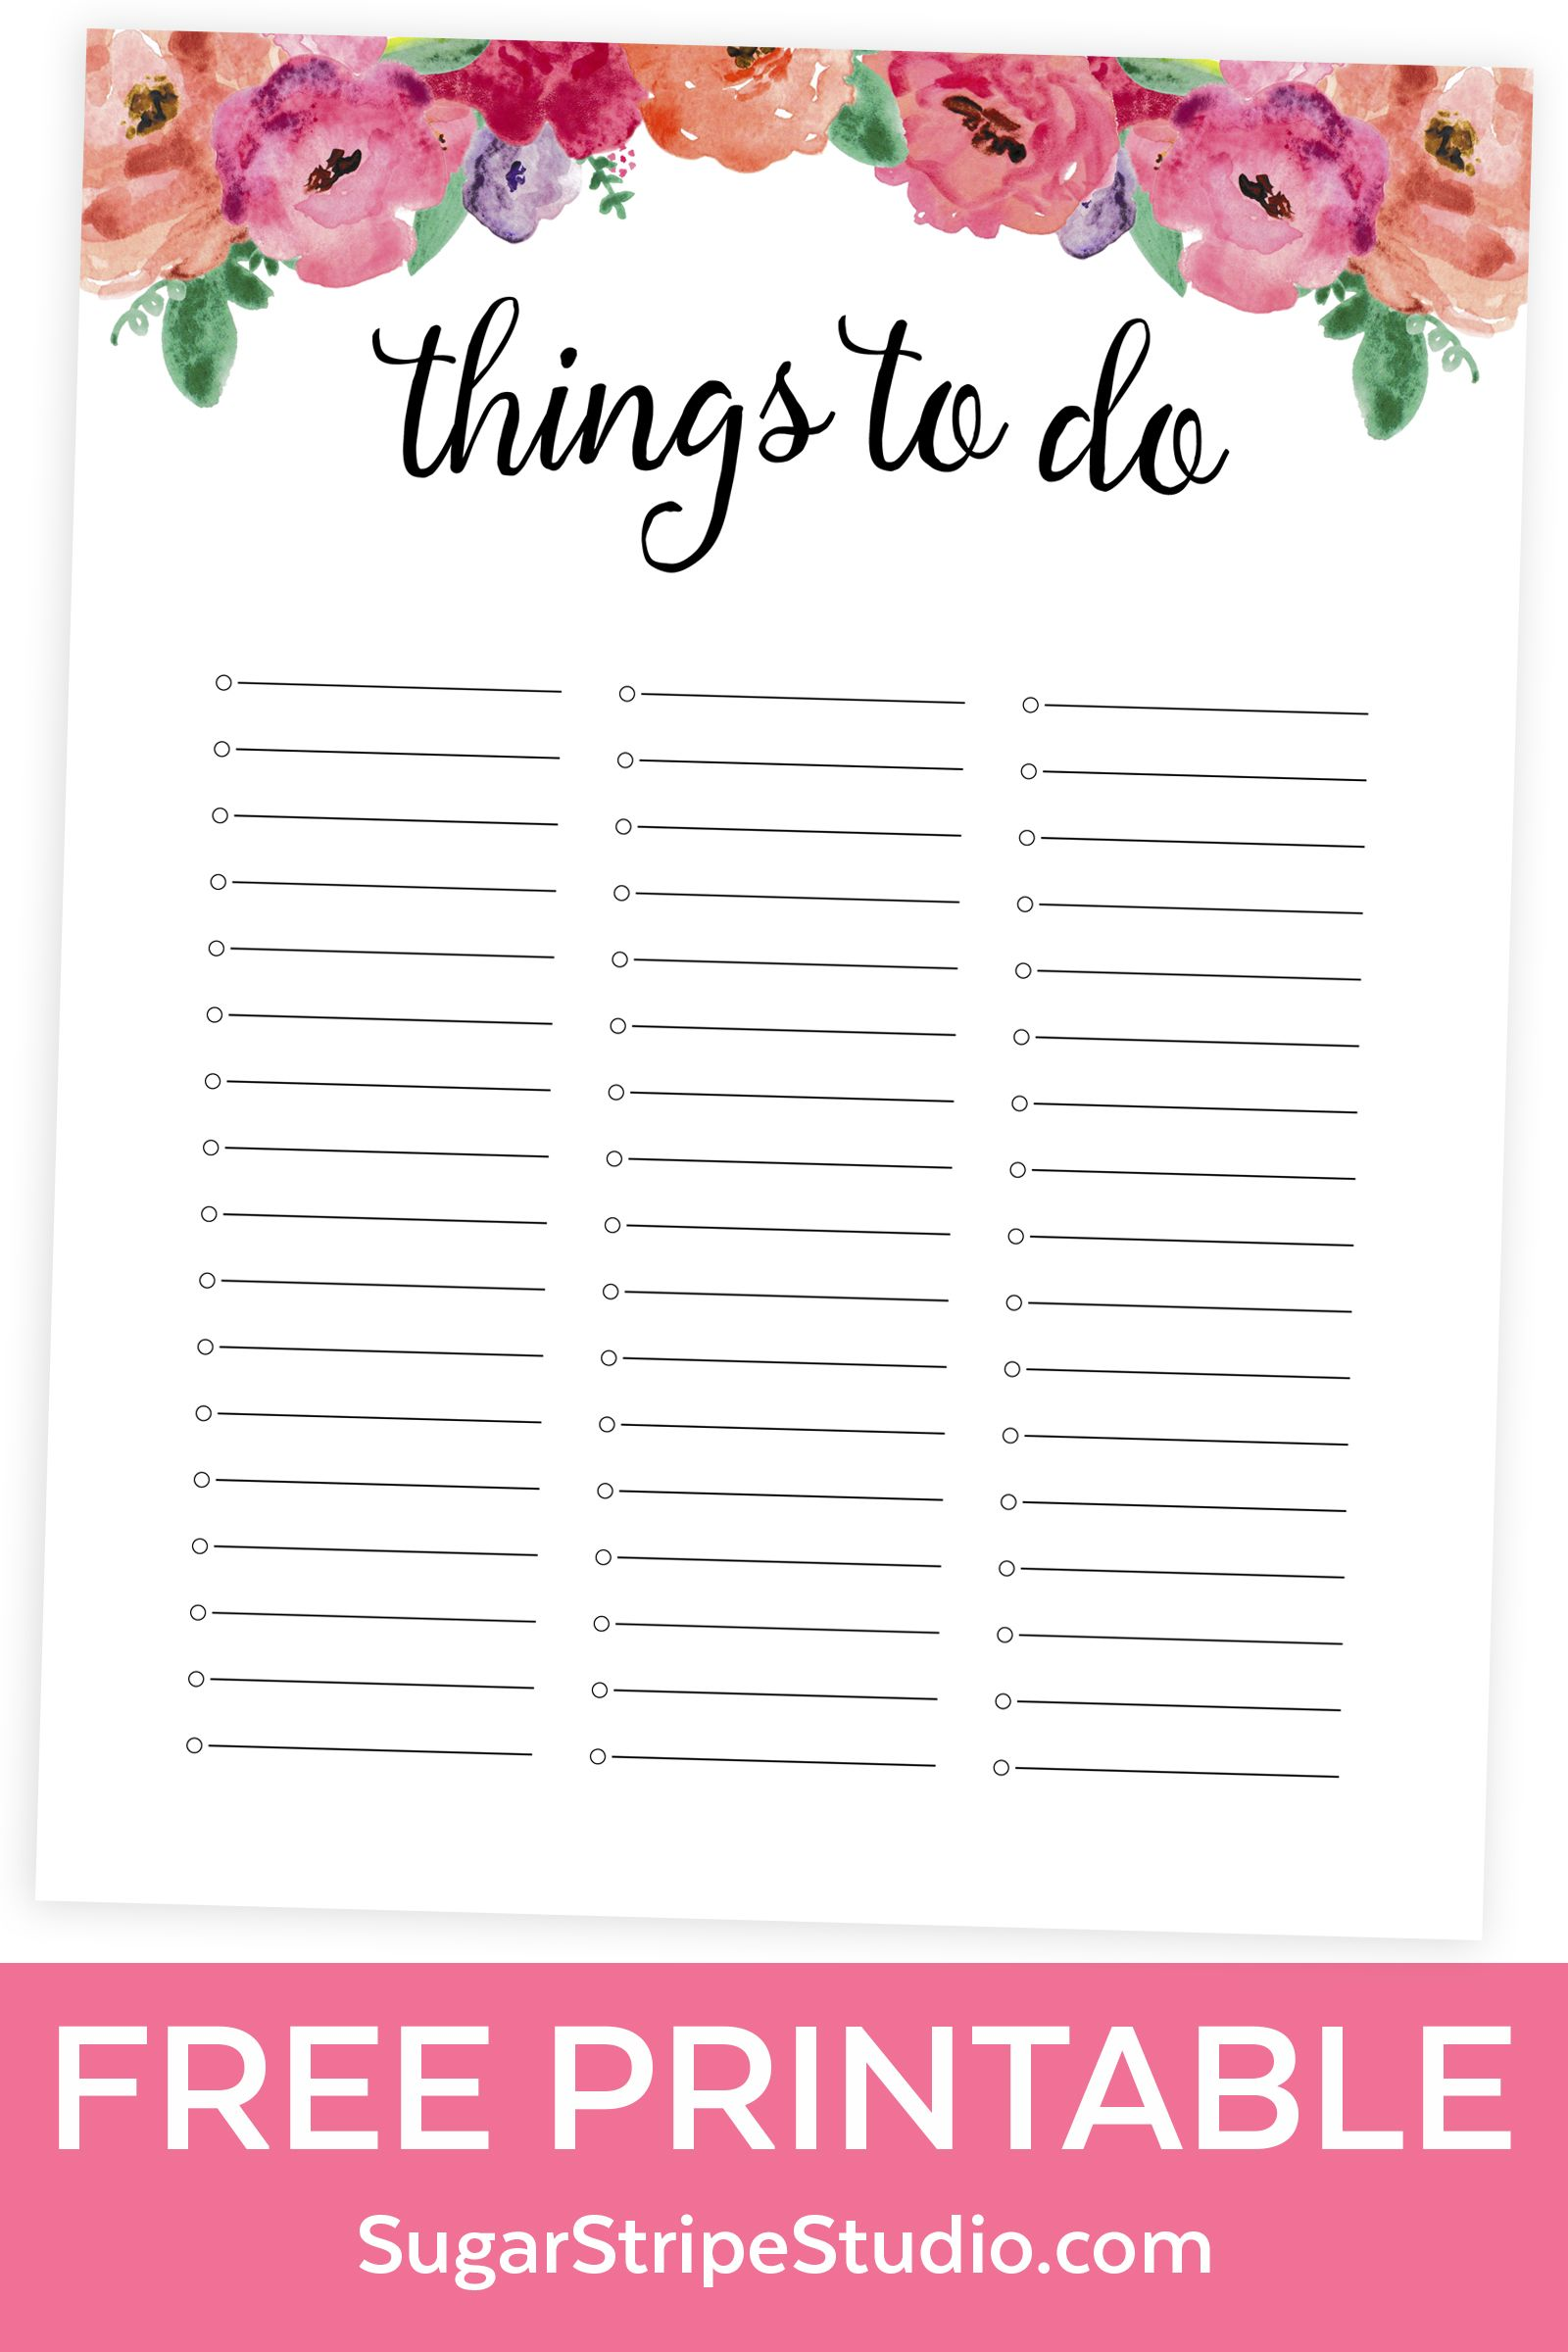 free to do list printable - watercolor floral design | food * family